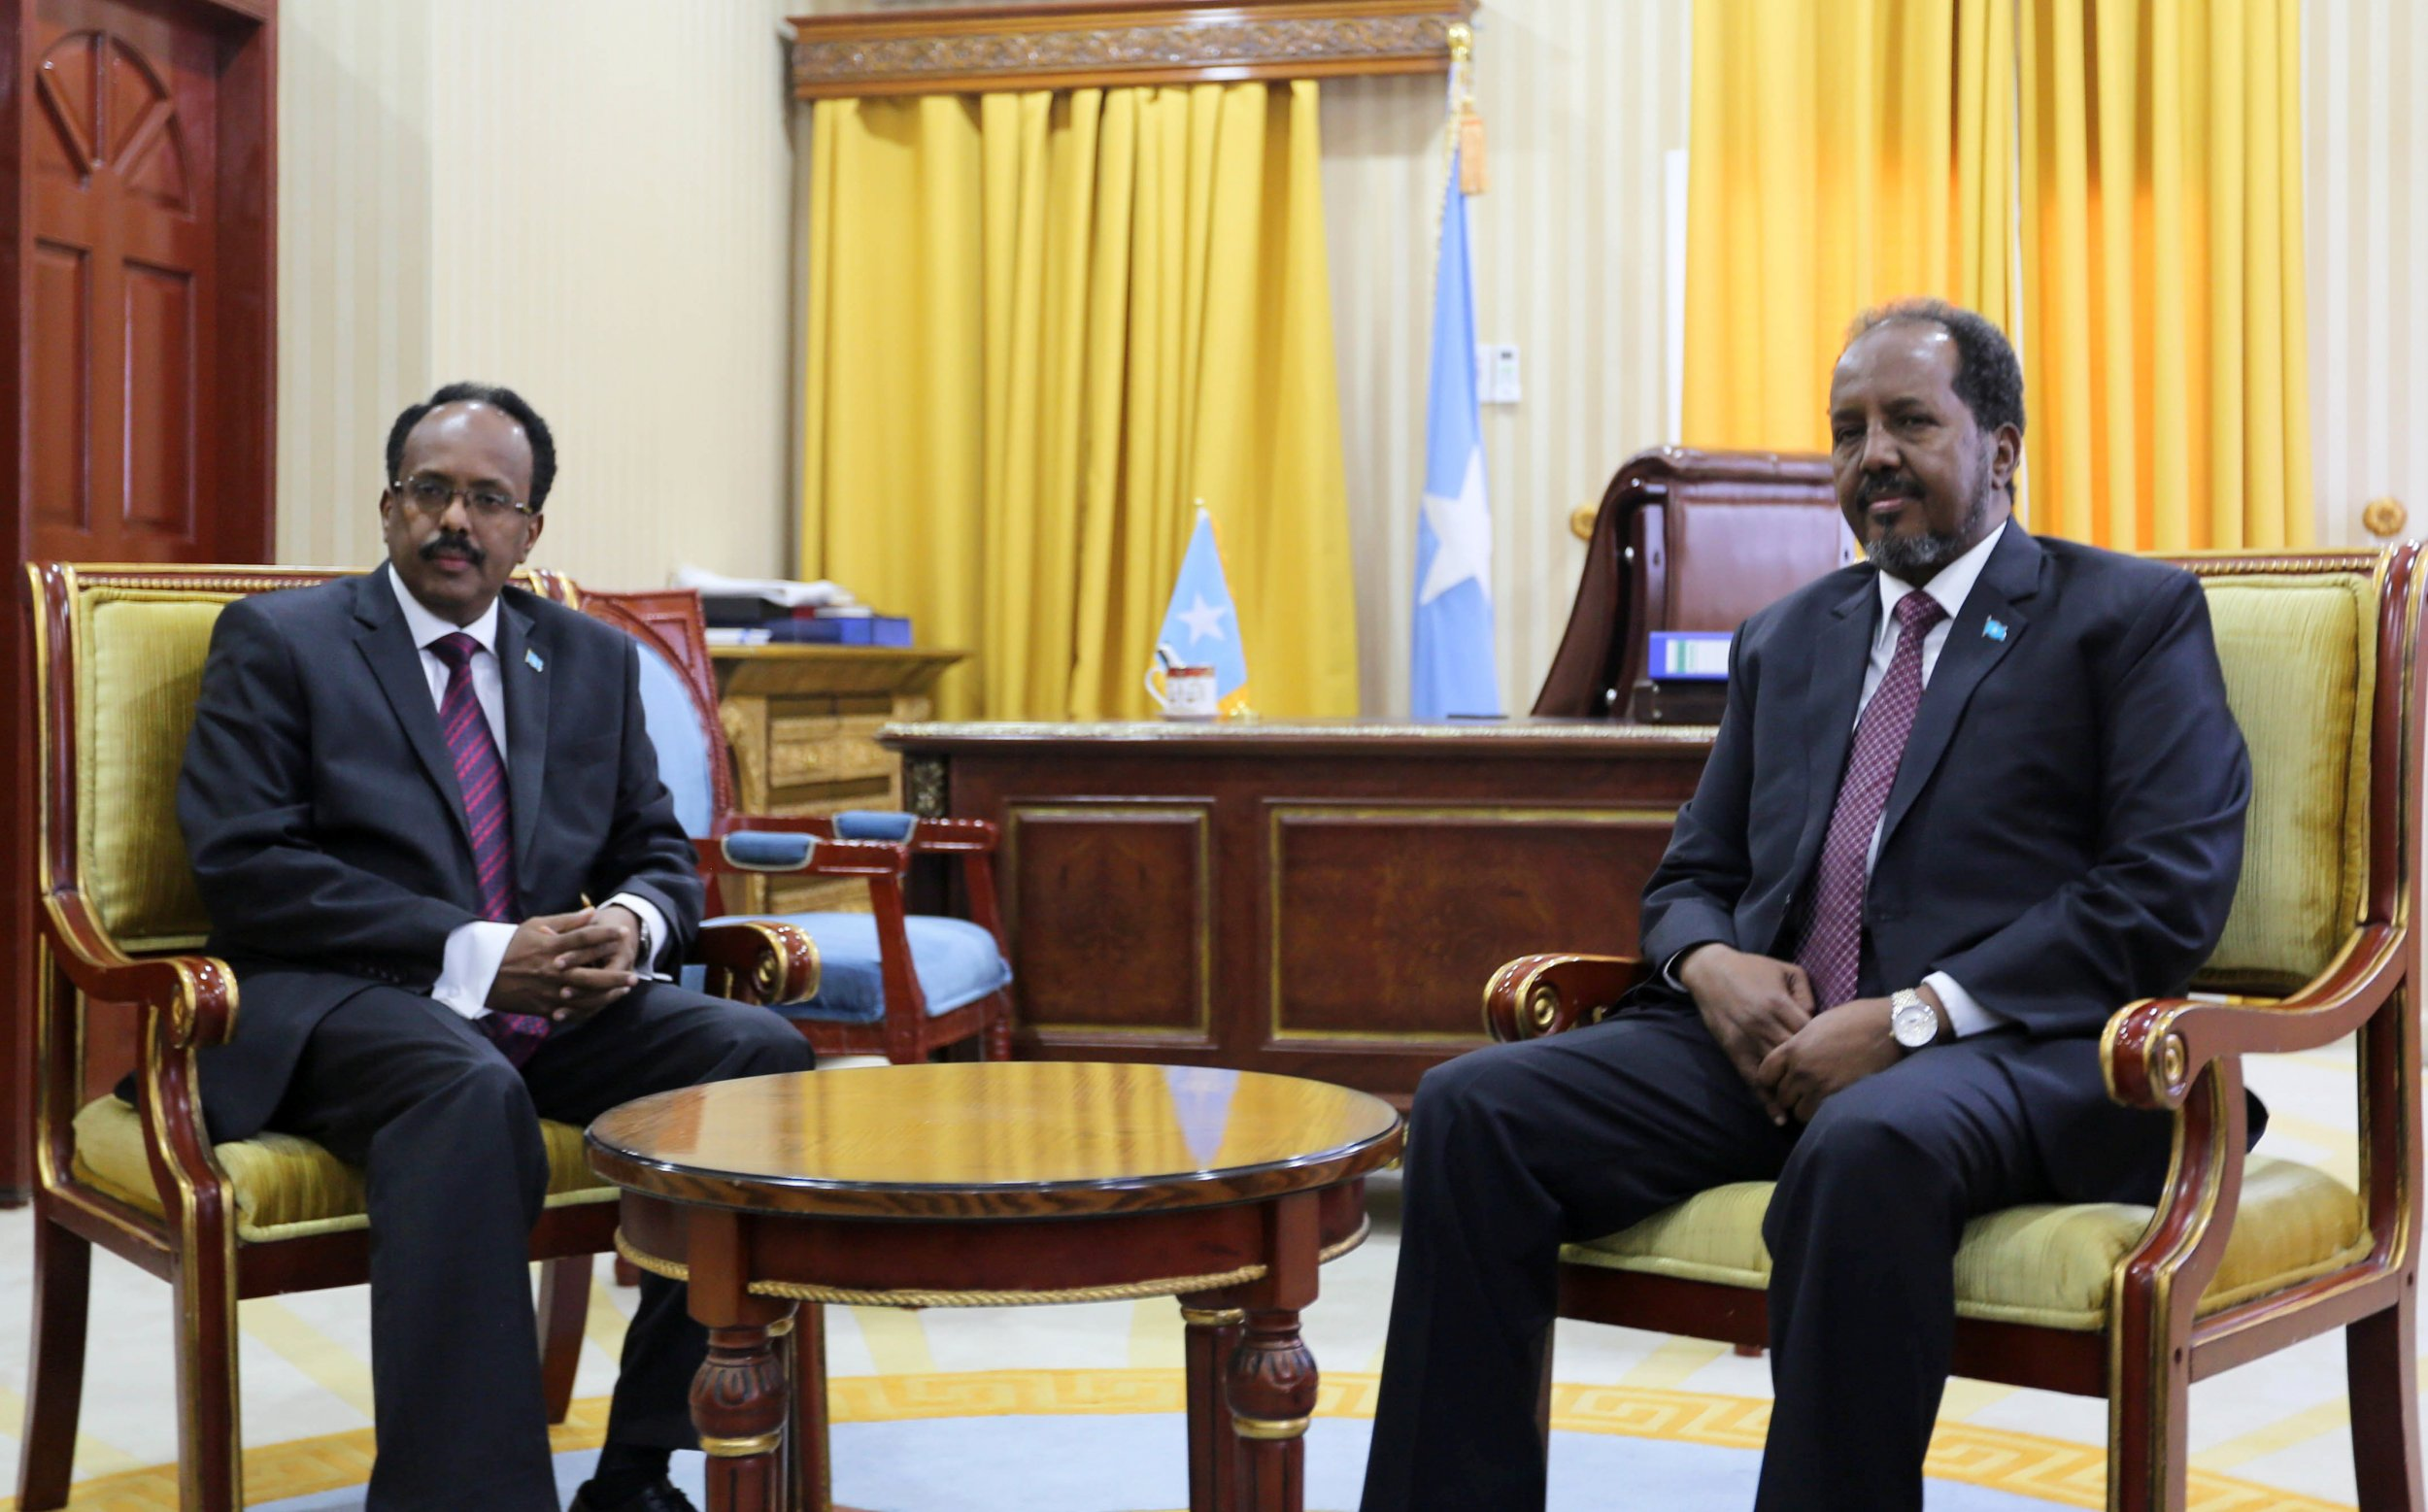 Hassan Sheikh Mohamud and Farmajo